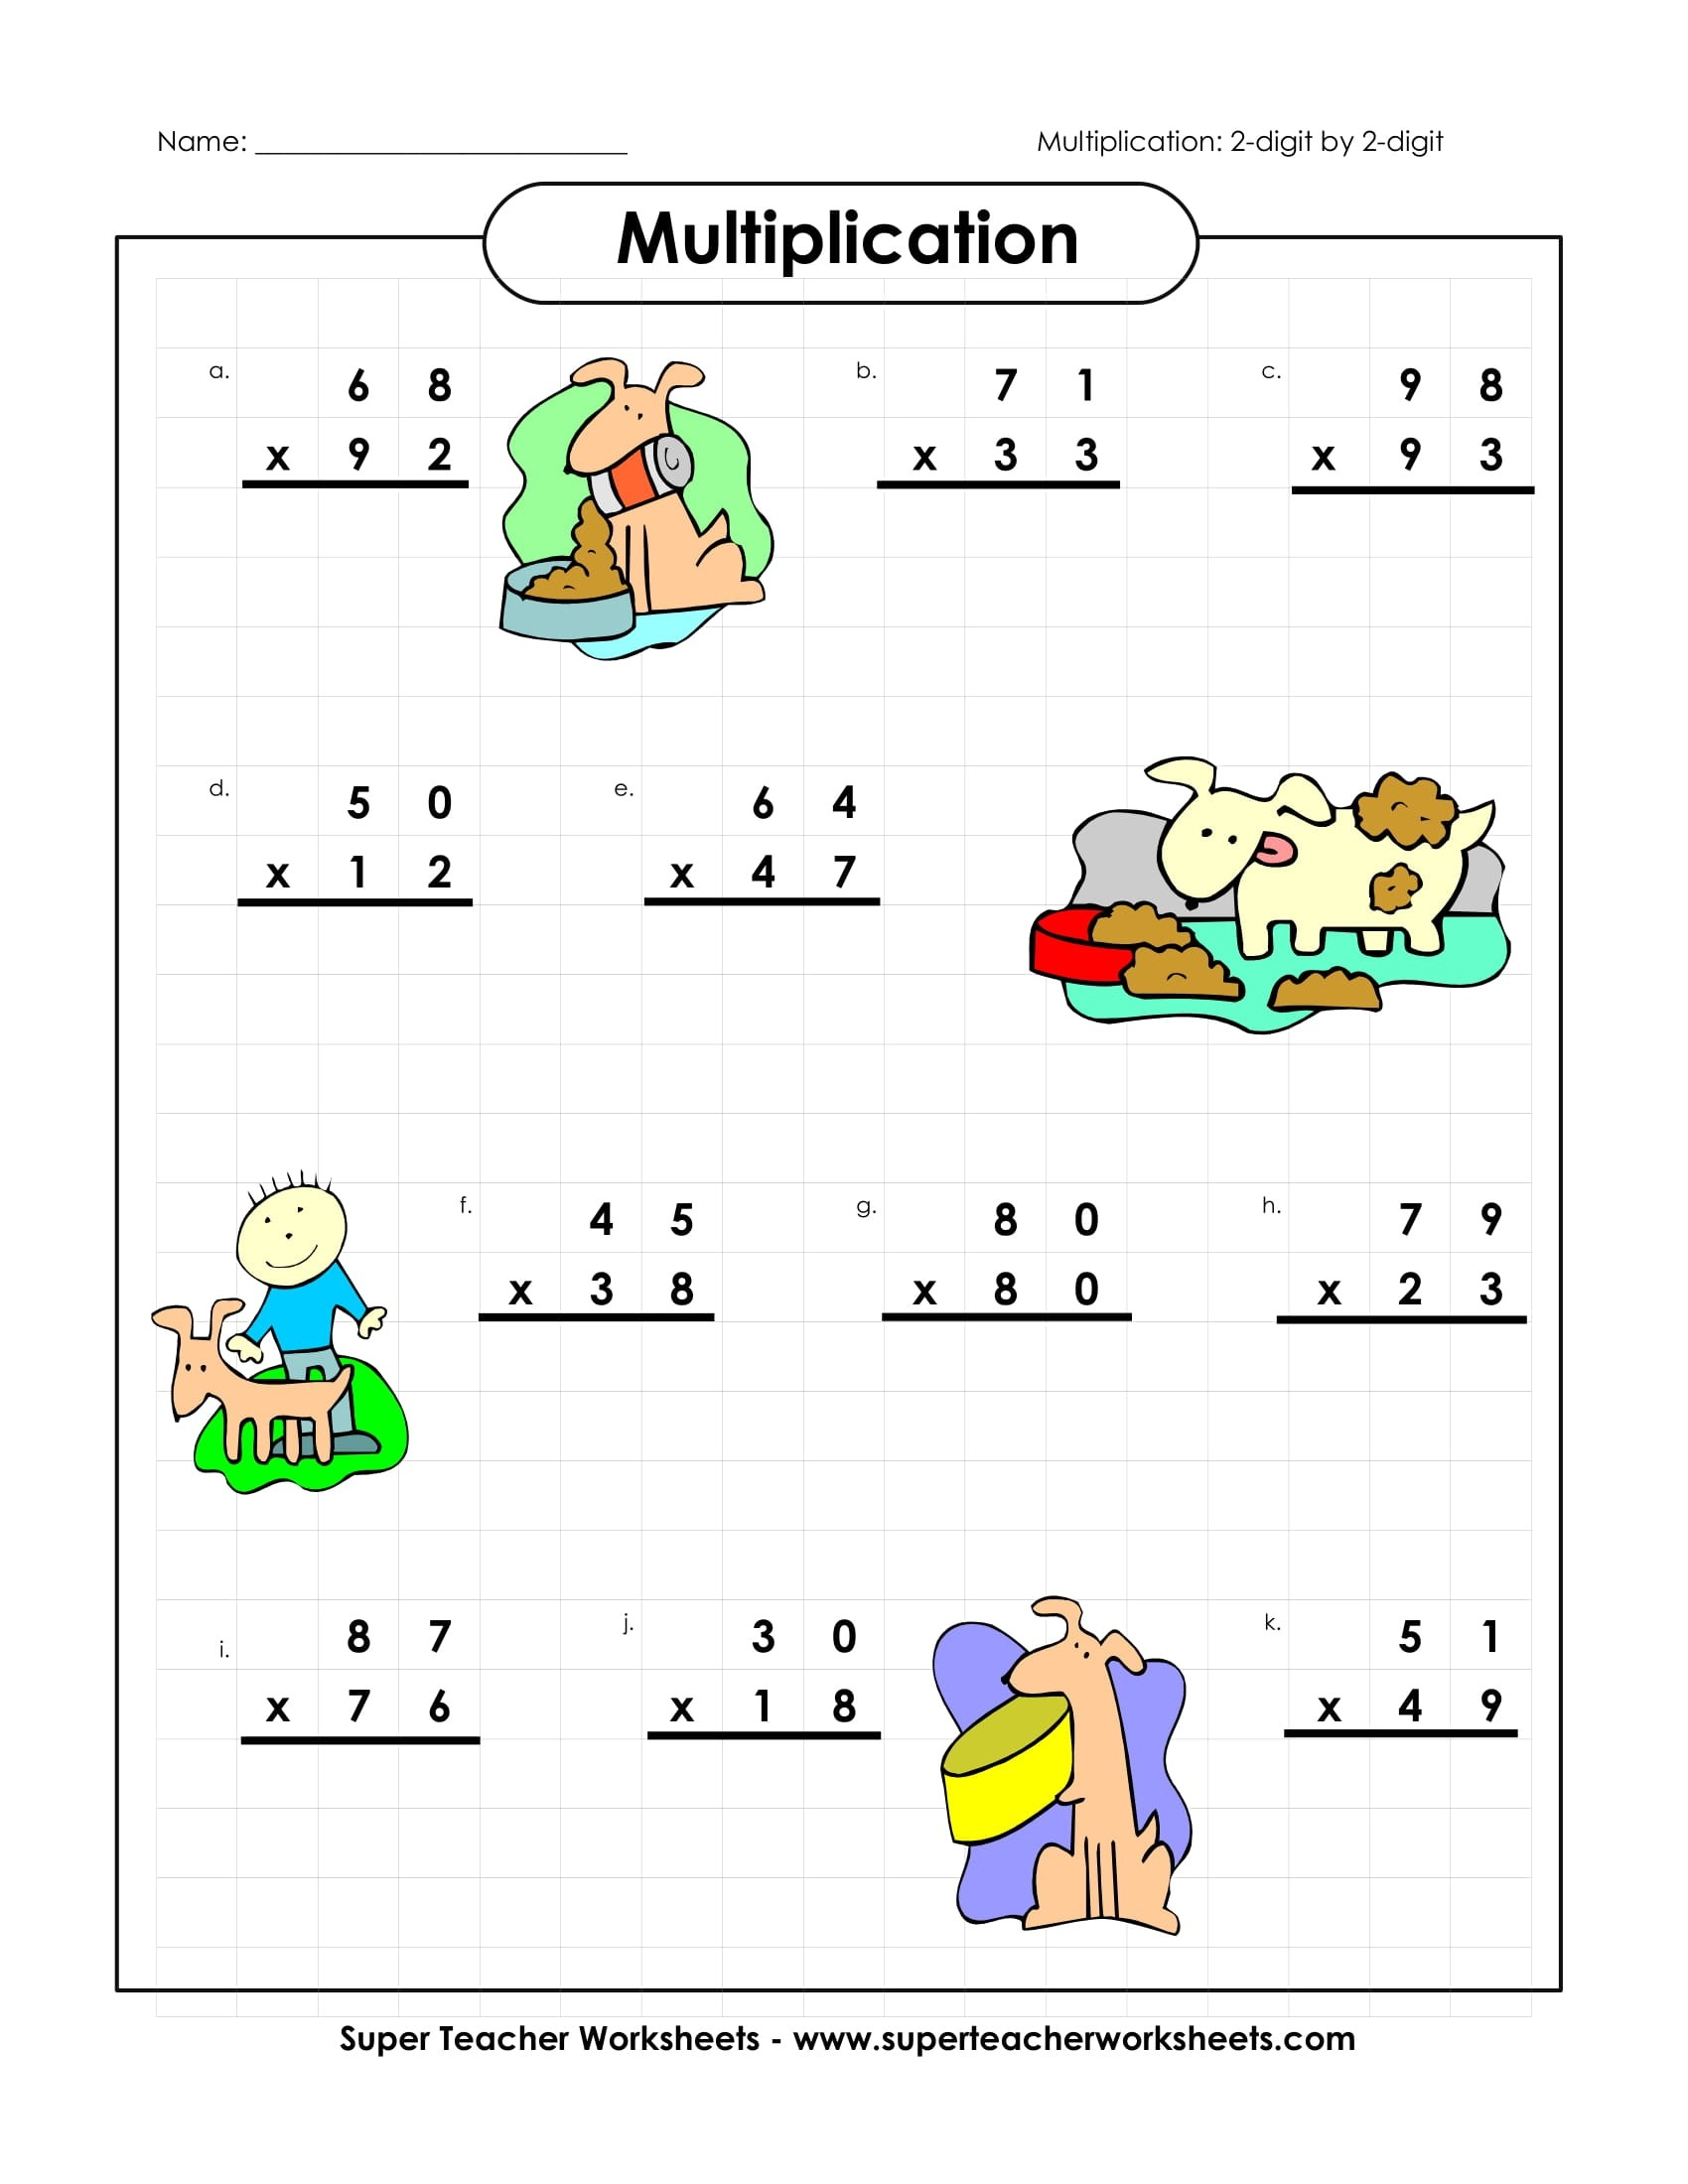 Multiplication Sample Worksheet